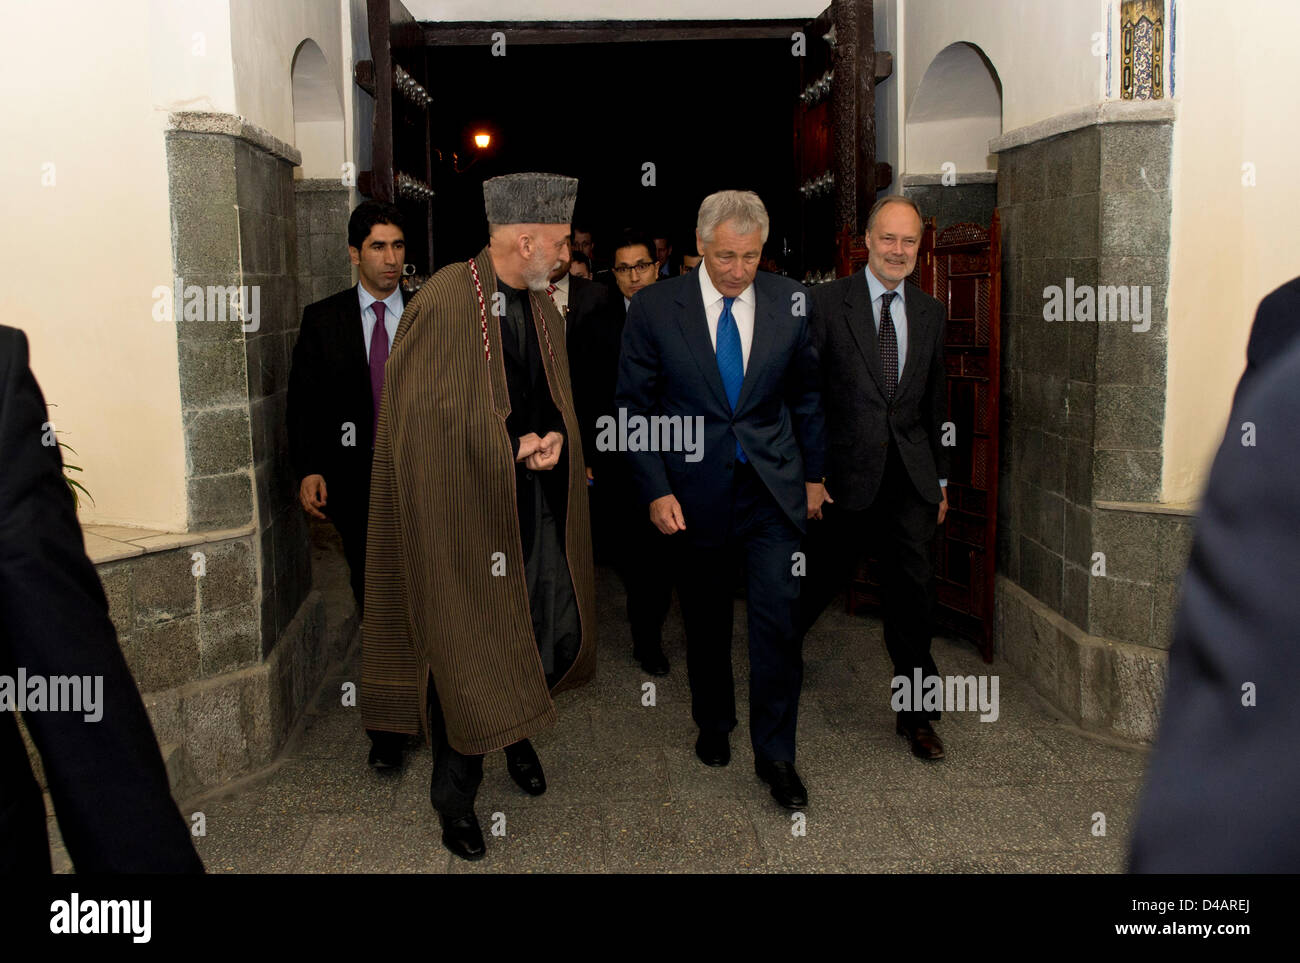 US Secretary of Defense Chuck Hagel walks with Afghan president Hamid Karzai March 10, 2013 in Kabul, Afghanistan. - Stock Image